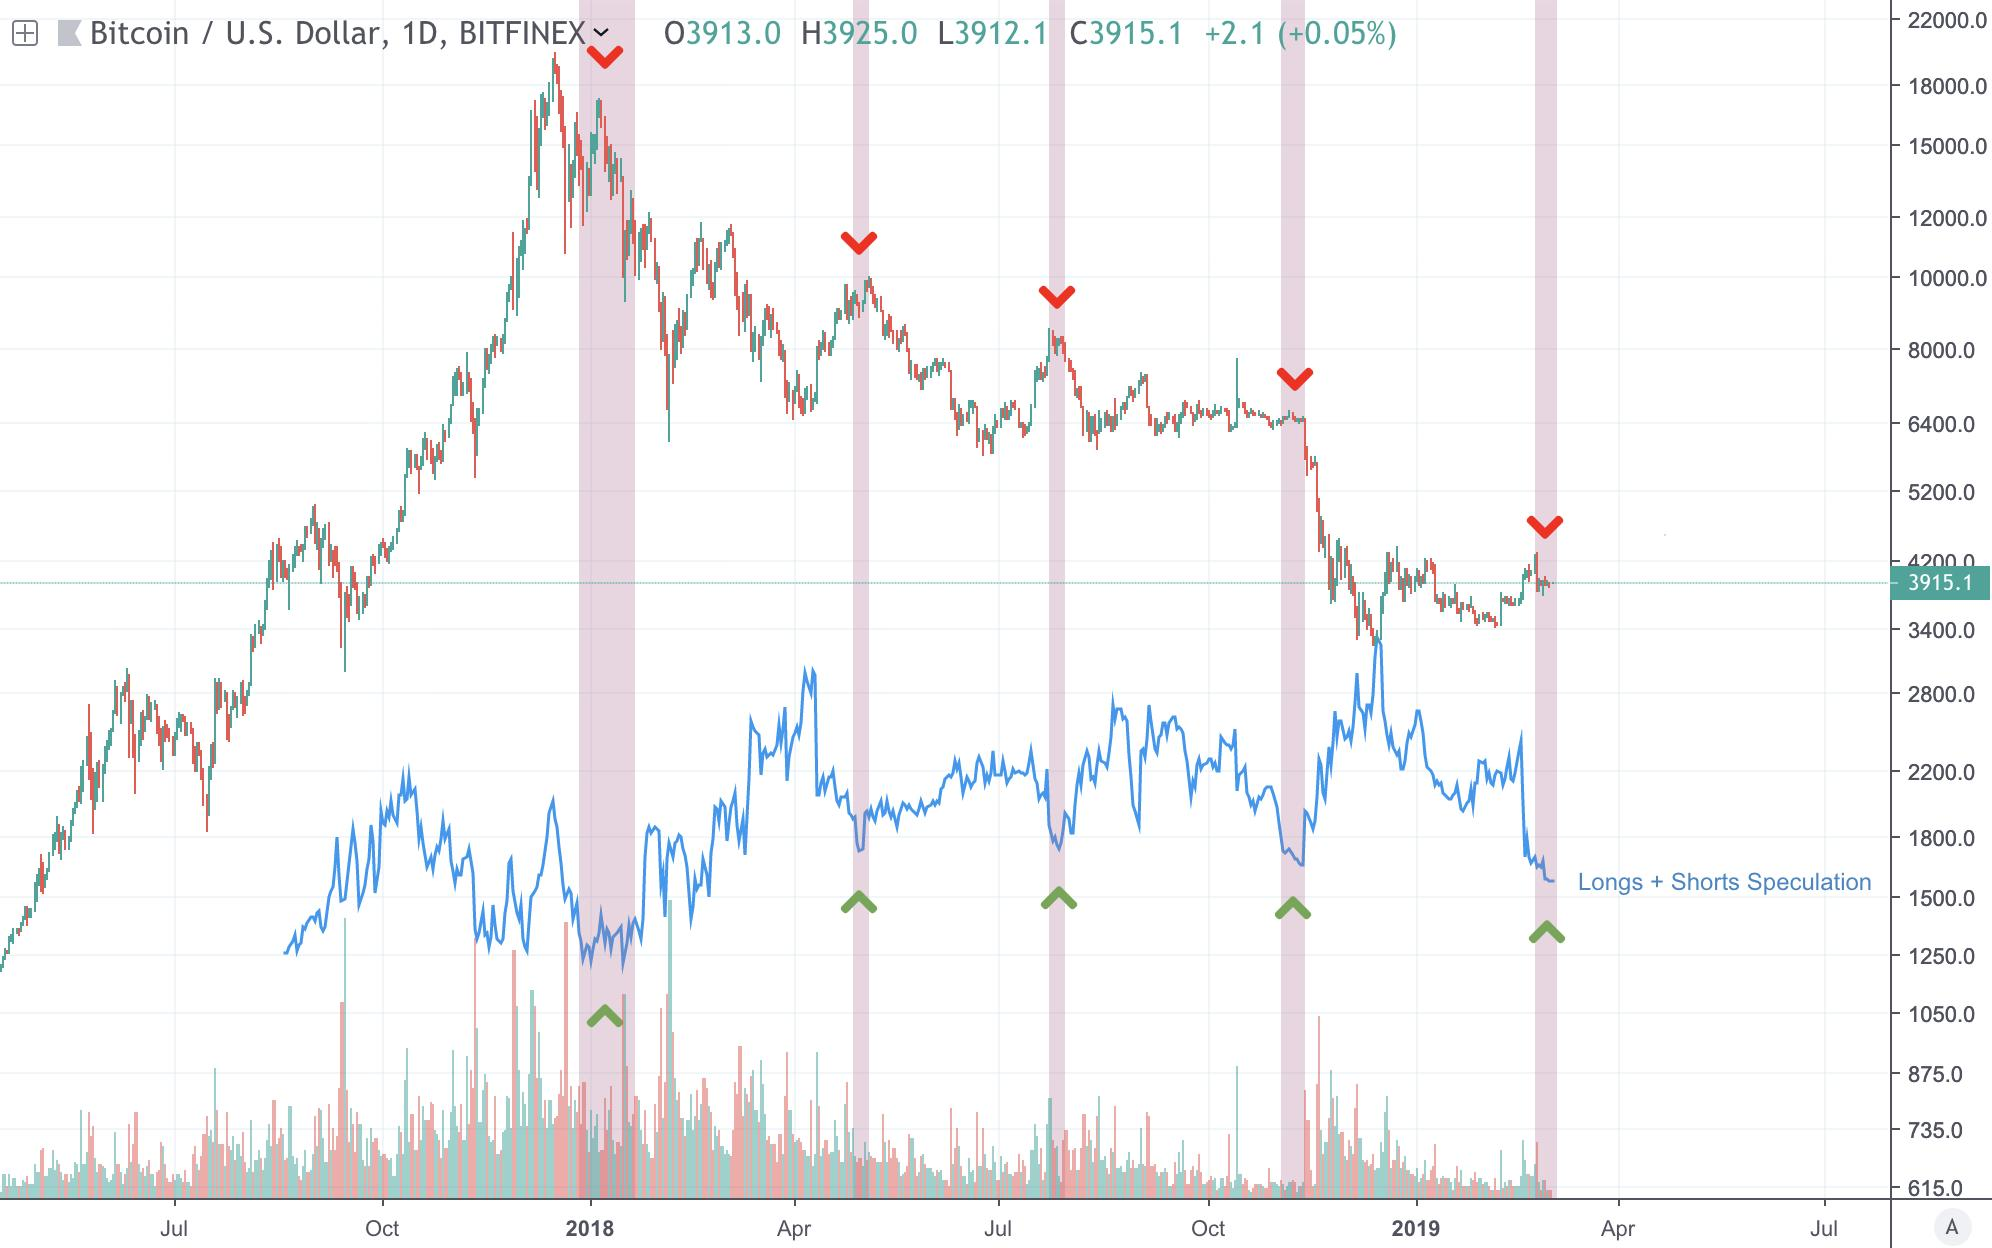 """If Real, Booming Crypto Volume Could Push Bitcoin Into """"Raging Bull Market"""""""